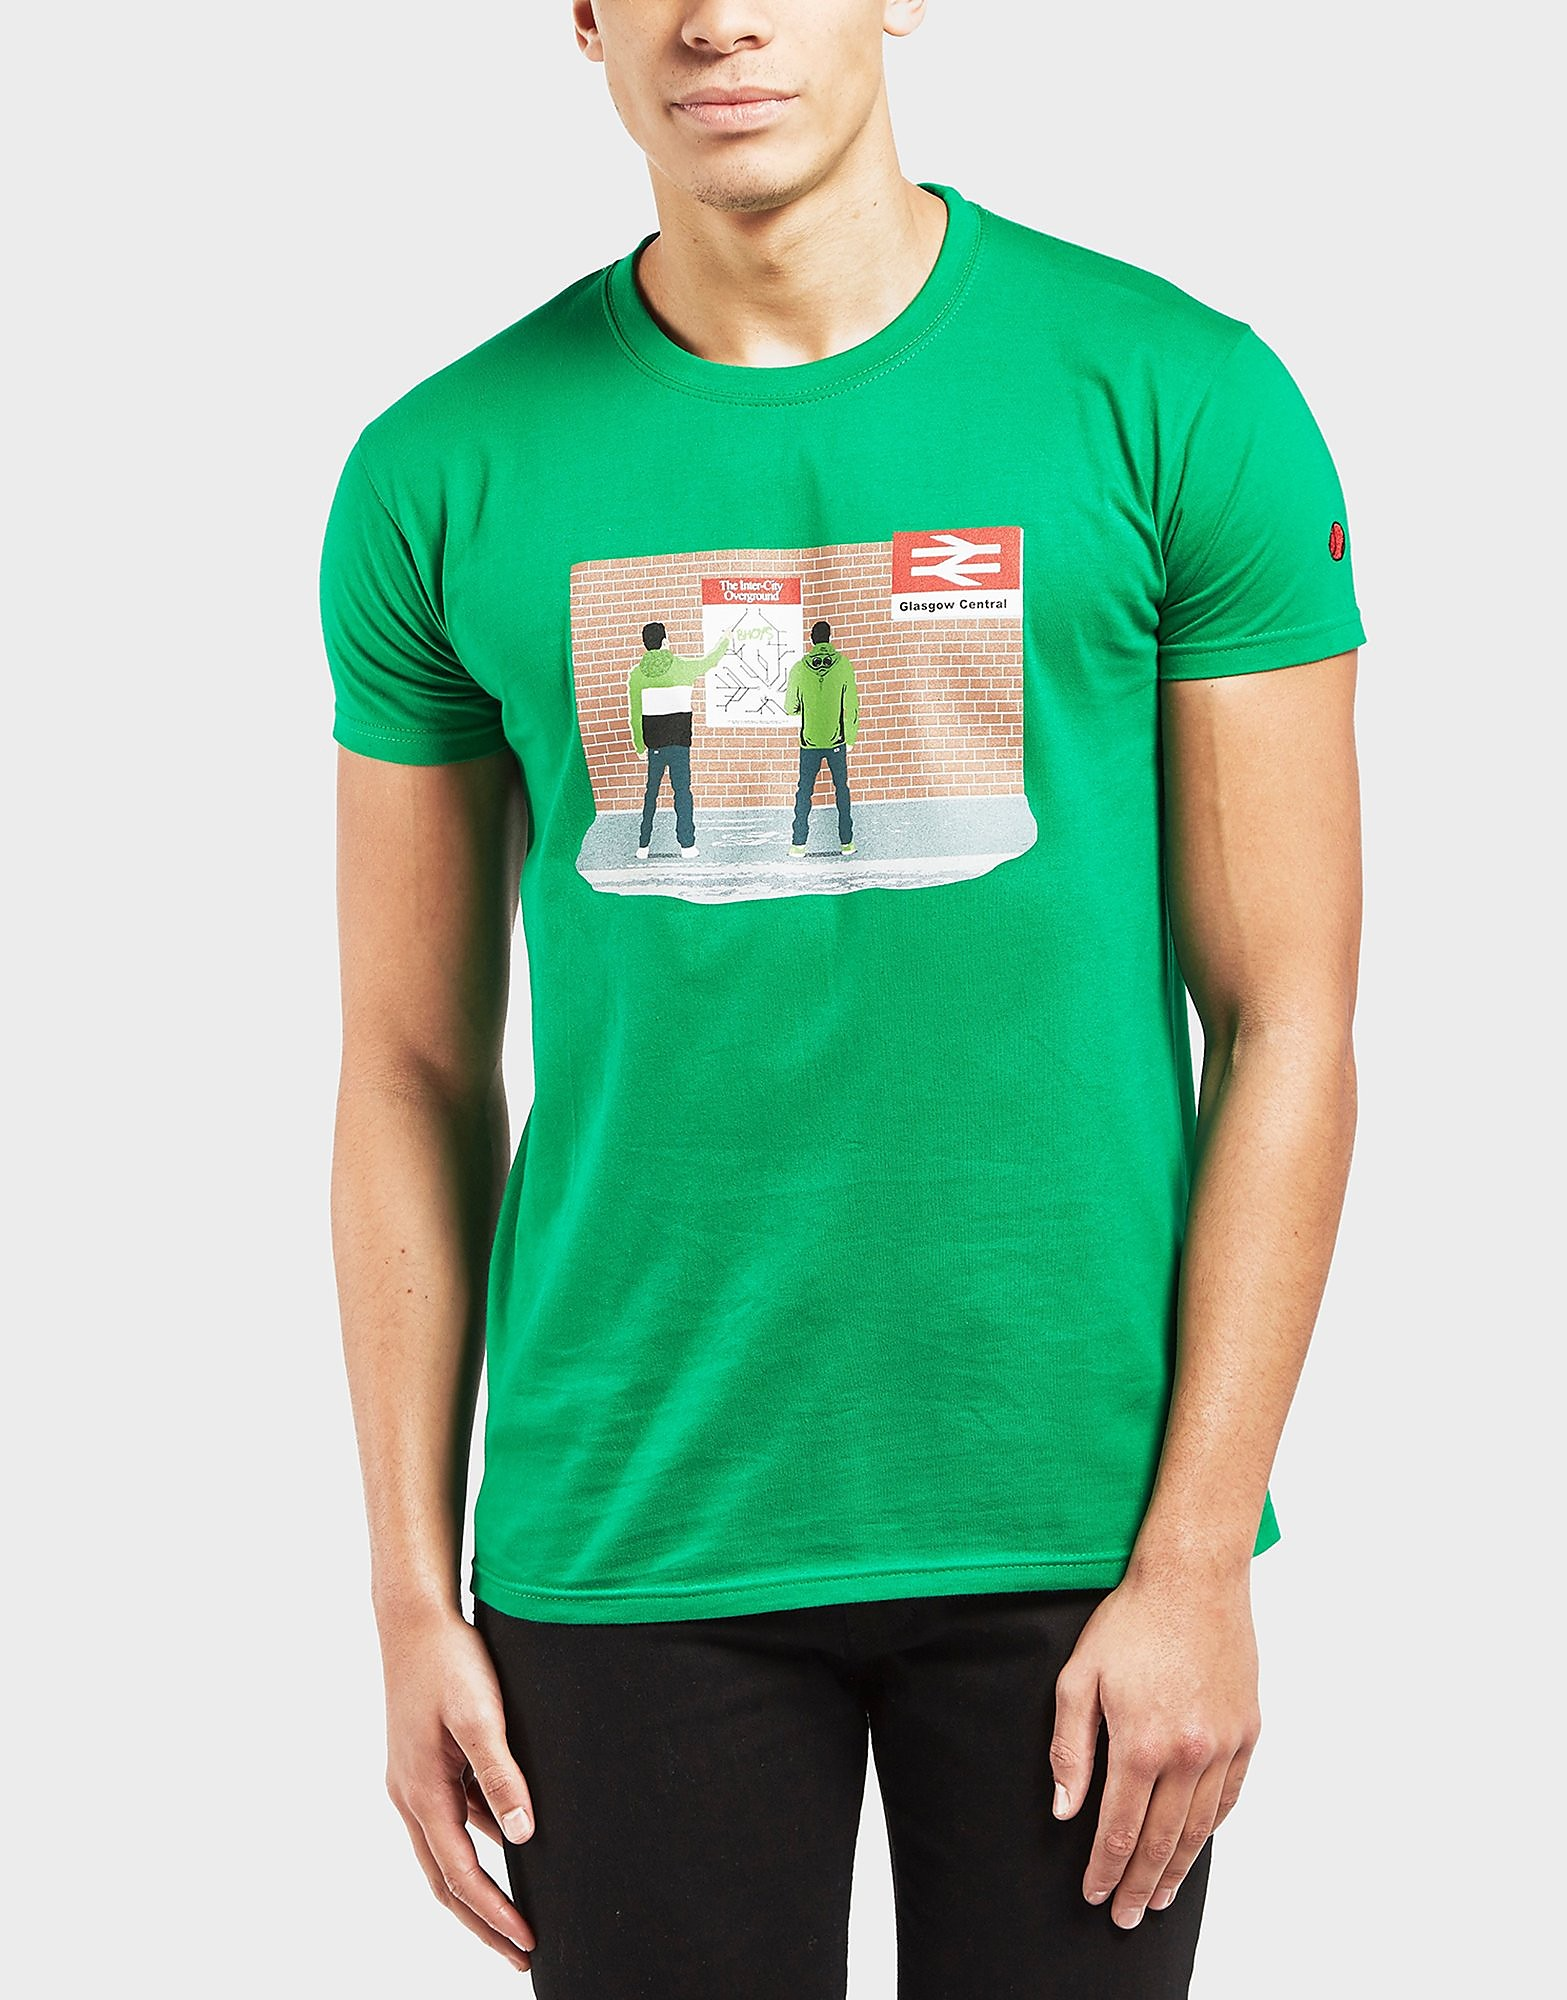 80s Casuals Celtic Station Short Sleeve T-Shirt - Exclusive